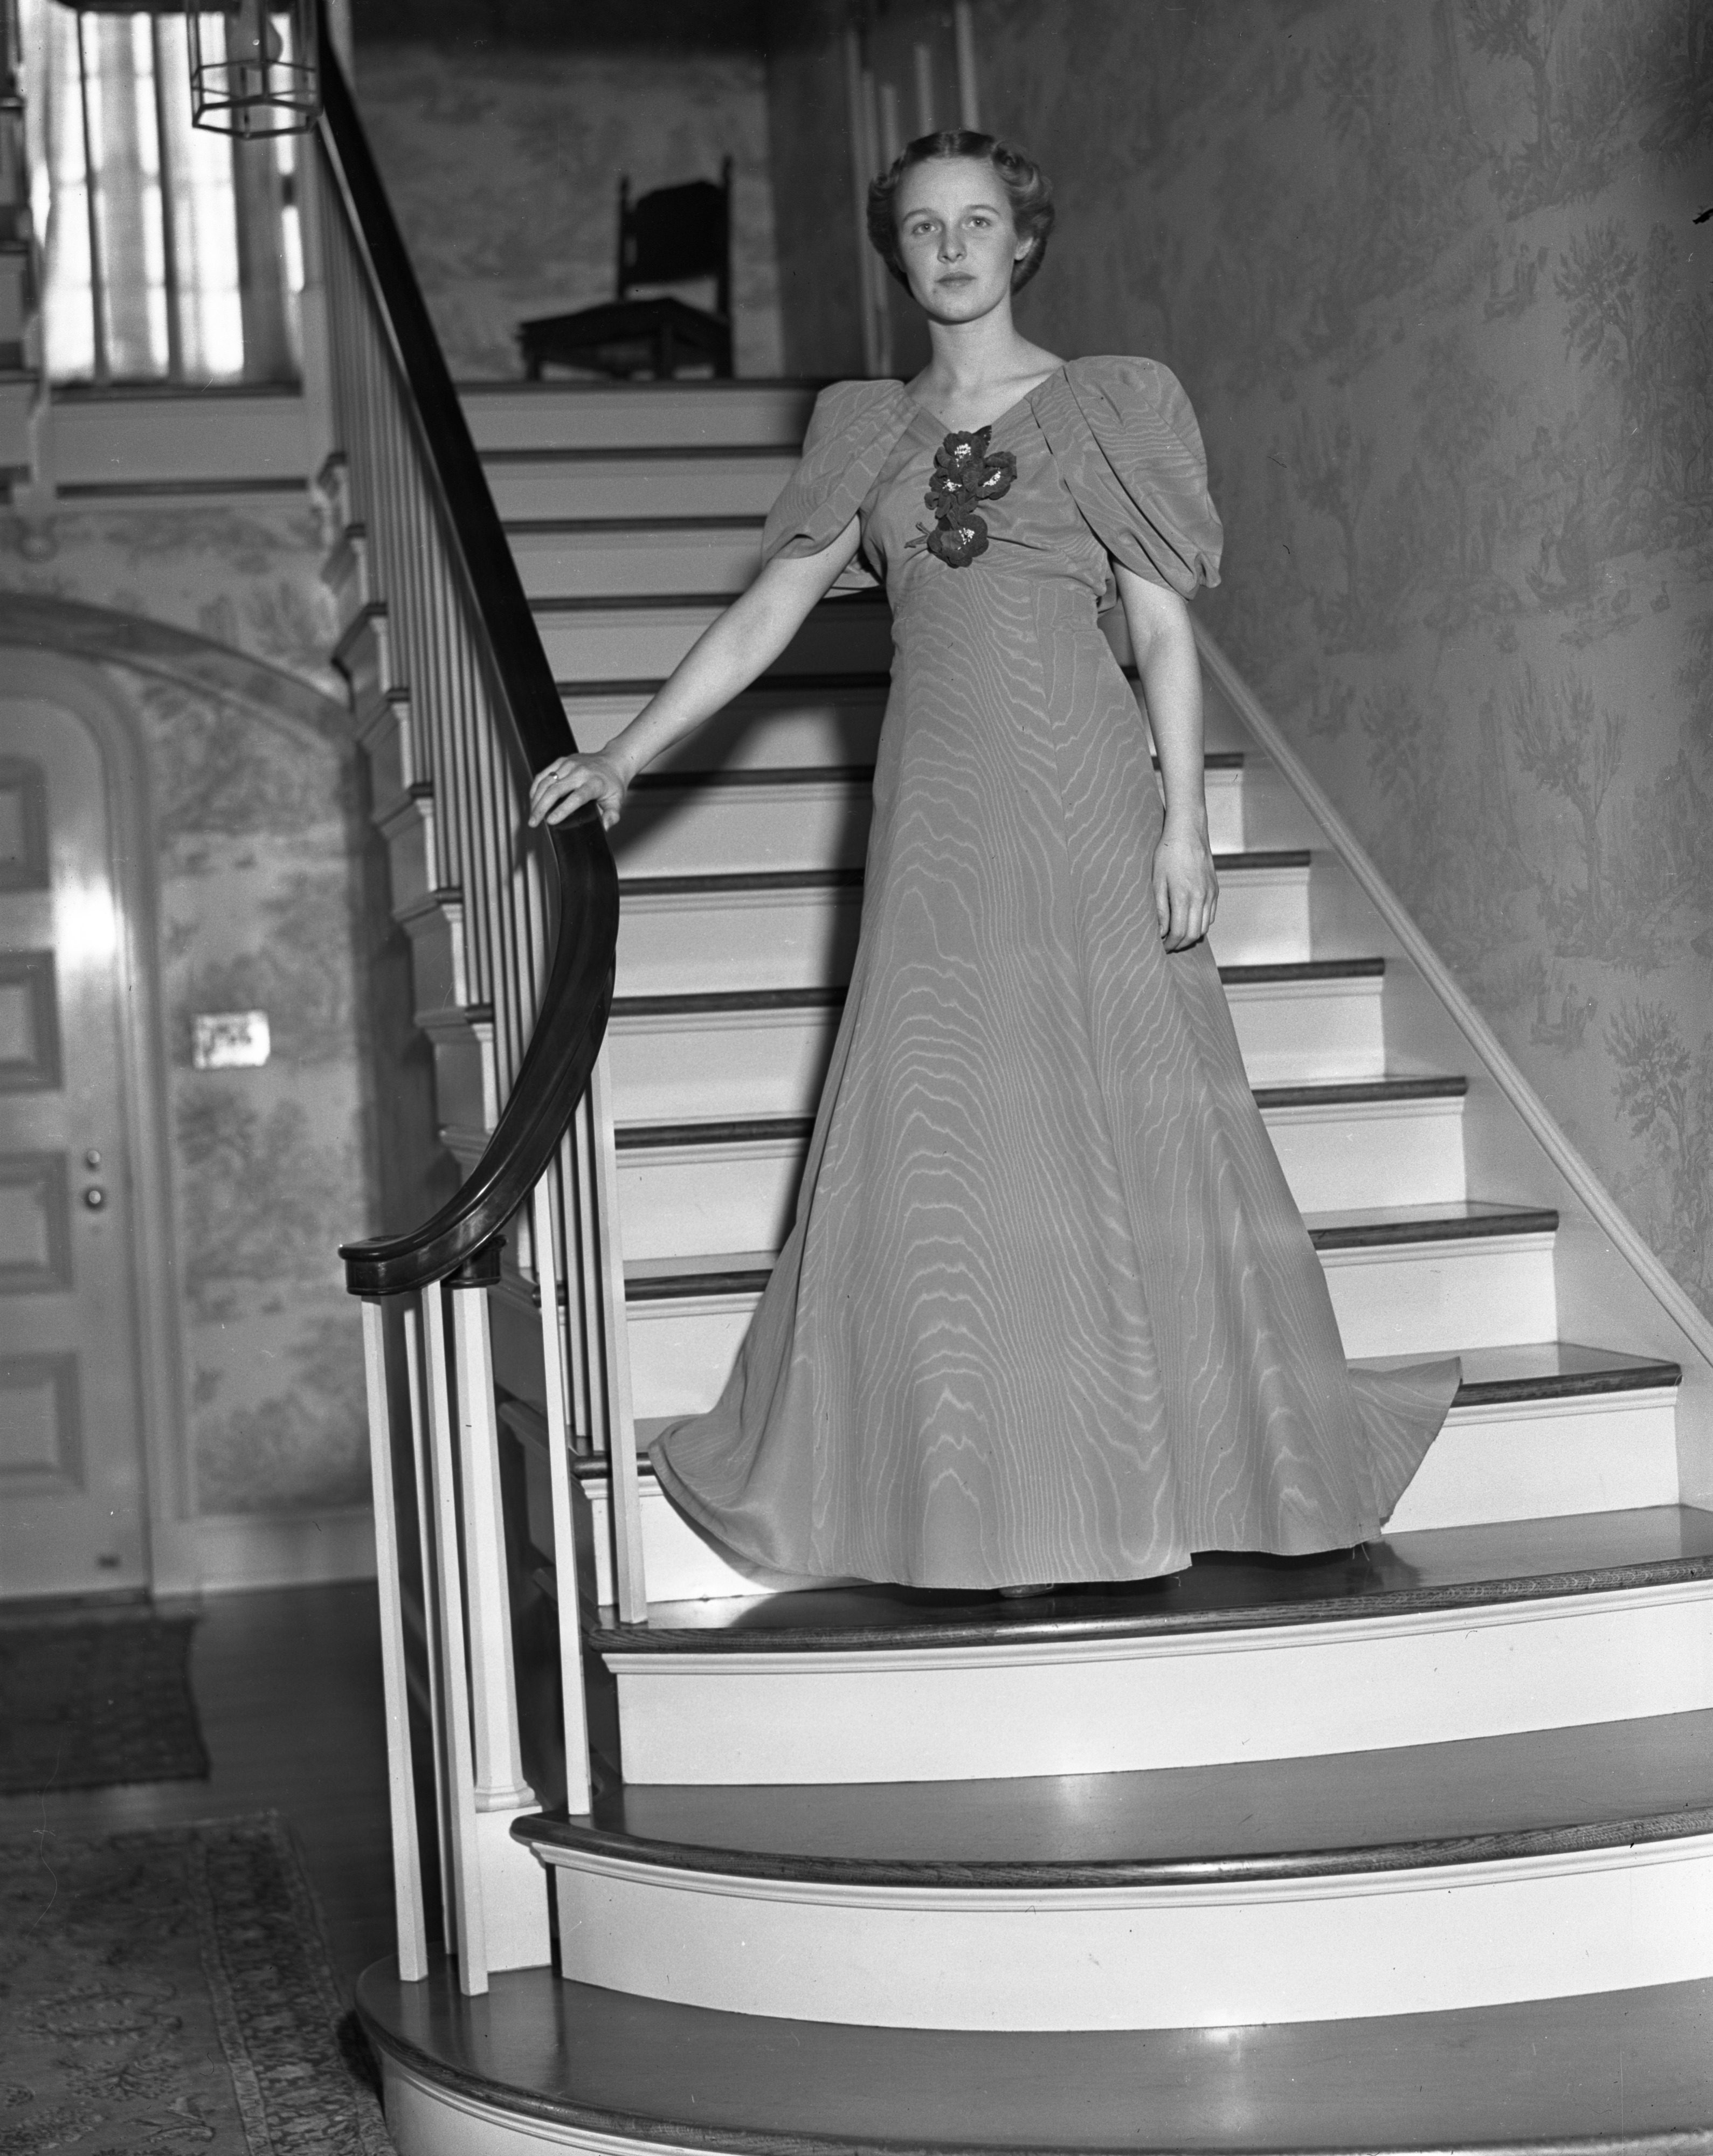 Jean Seeley, in J-Hop Gown, February 1937 image